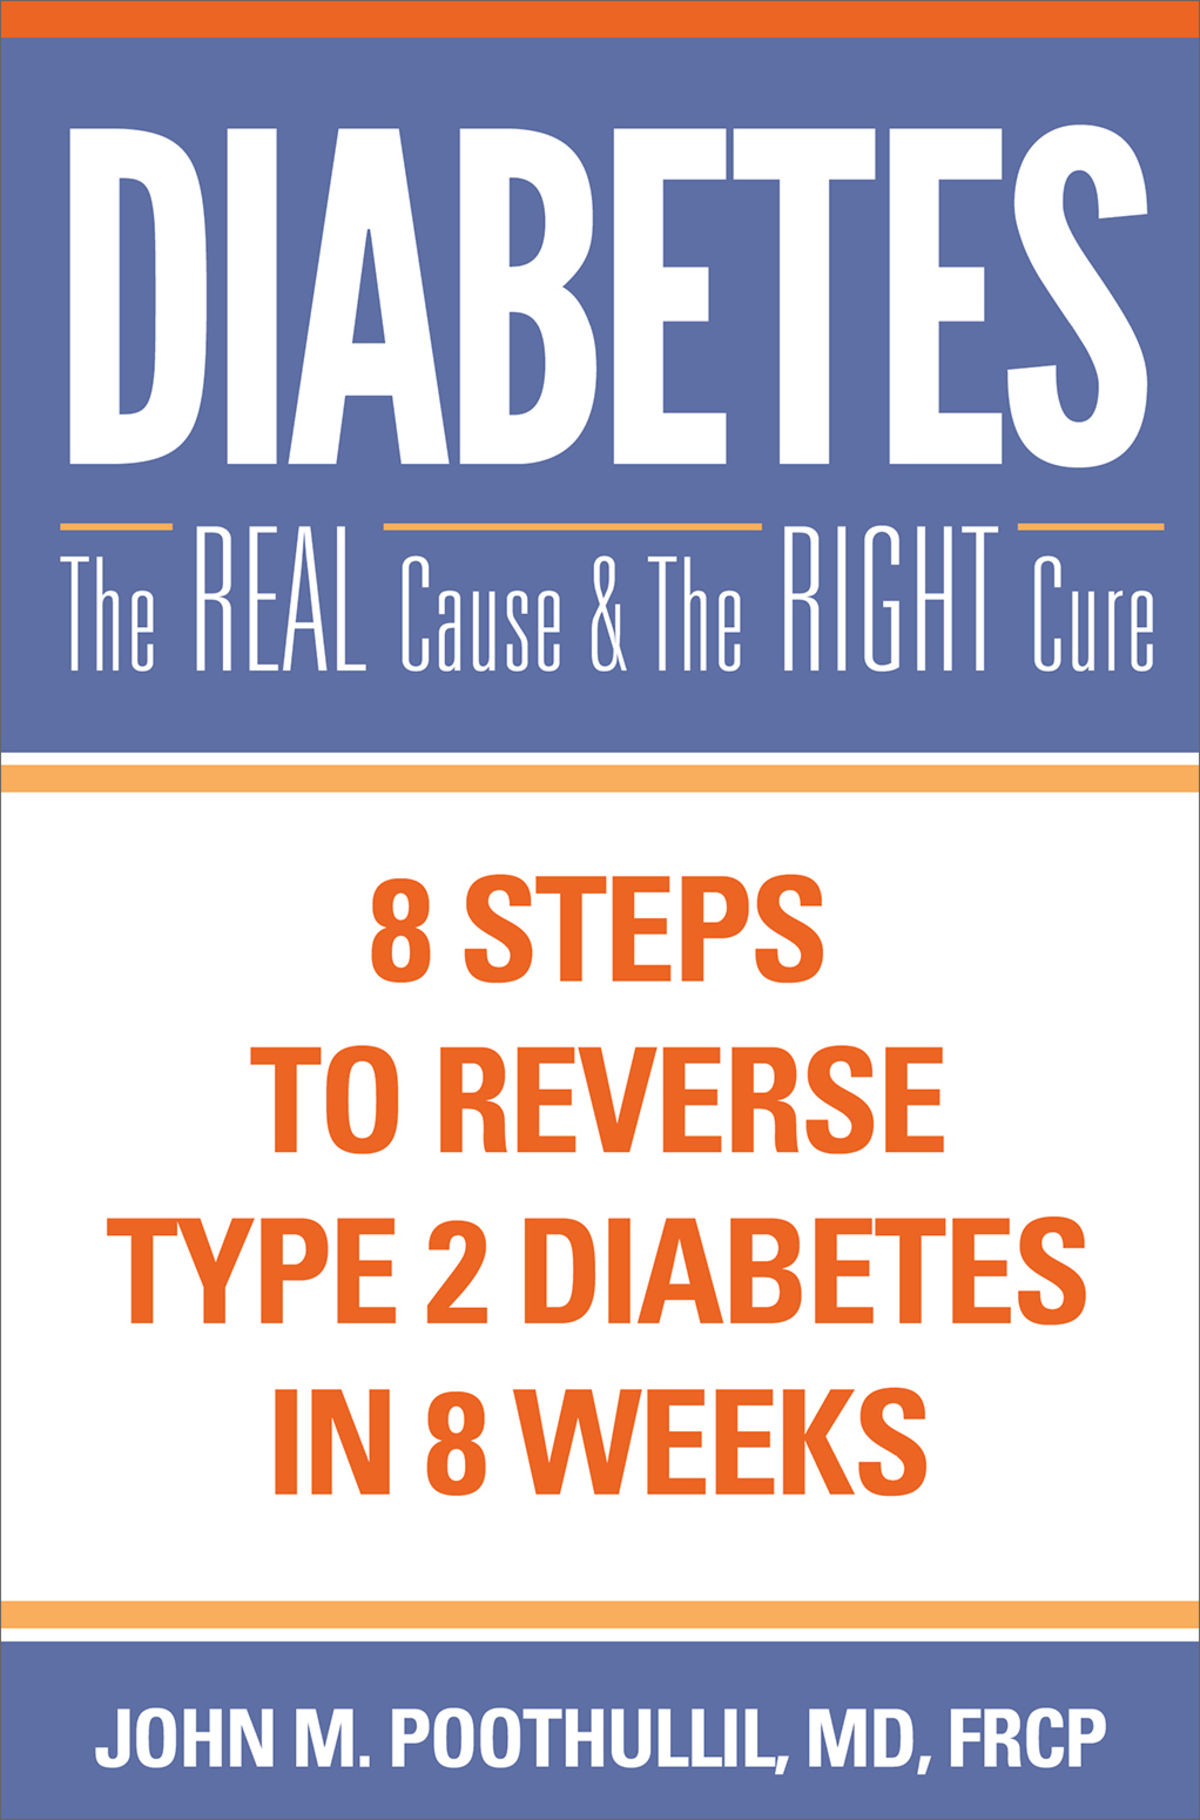 Diabetes: The Real Cause and the Right Cure | Psychology Today